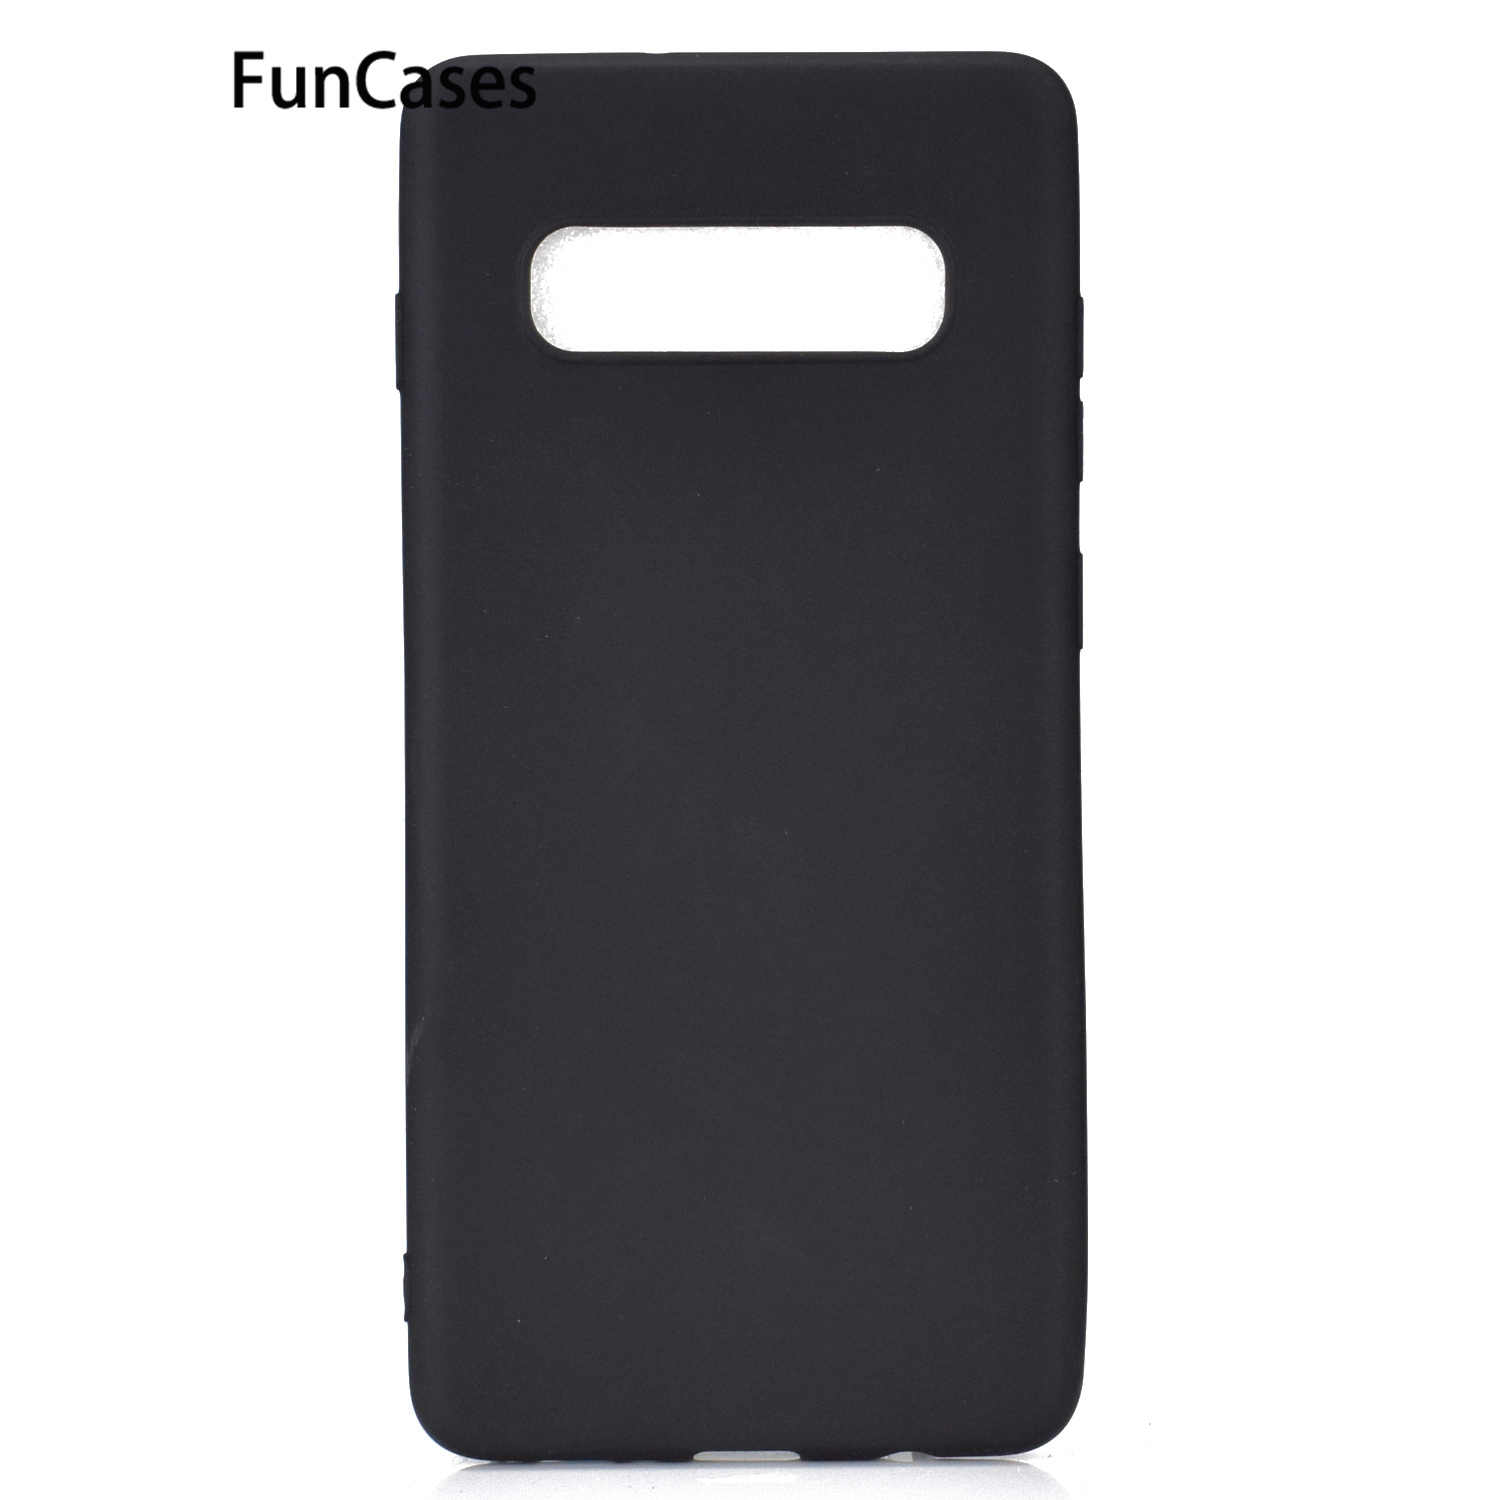 Black Cases For Samsung J4 Plus Soft Silicone Cases Capa Samsung Galaxy J4+ J2 Pro 2018 J3 2017 J4 J5 J510 J6 J7 J710 J8 S10 5G